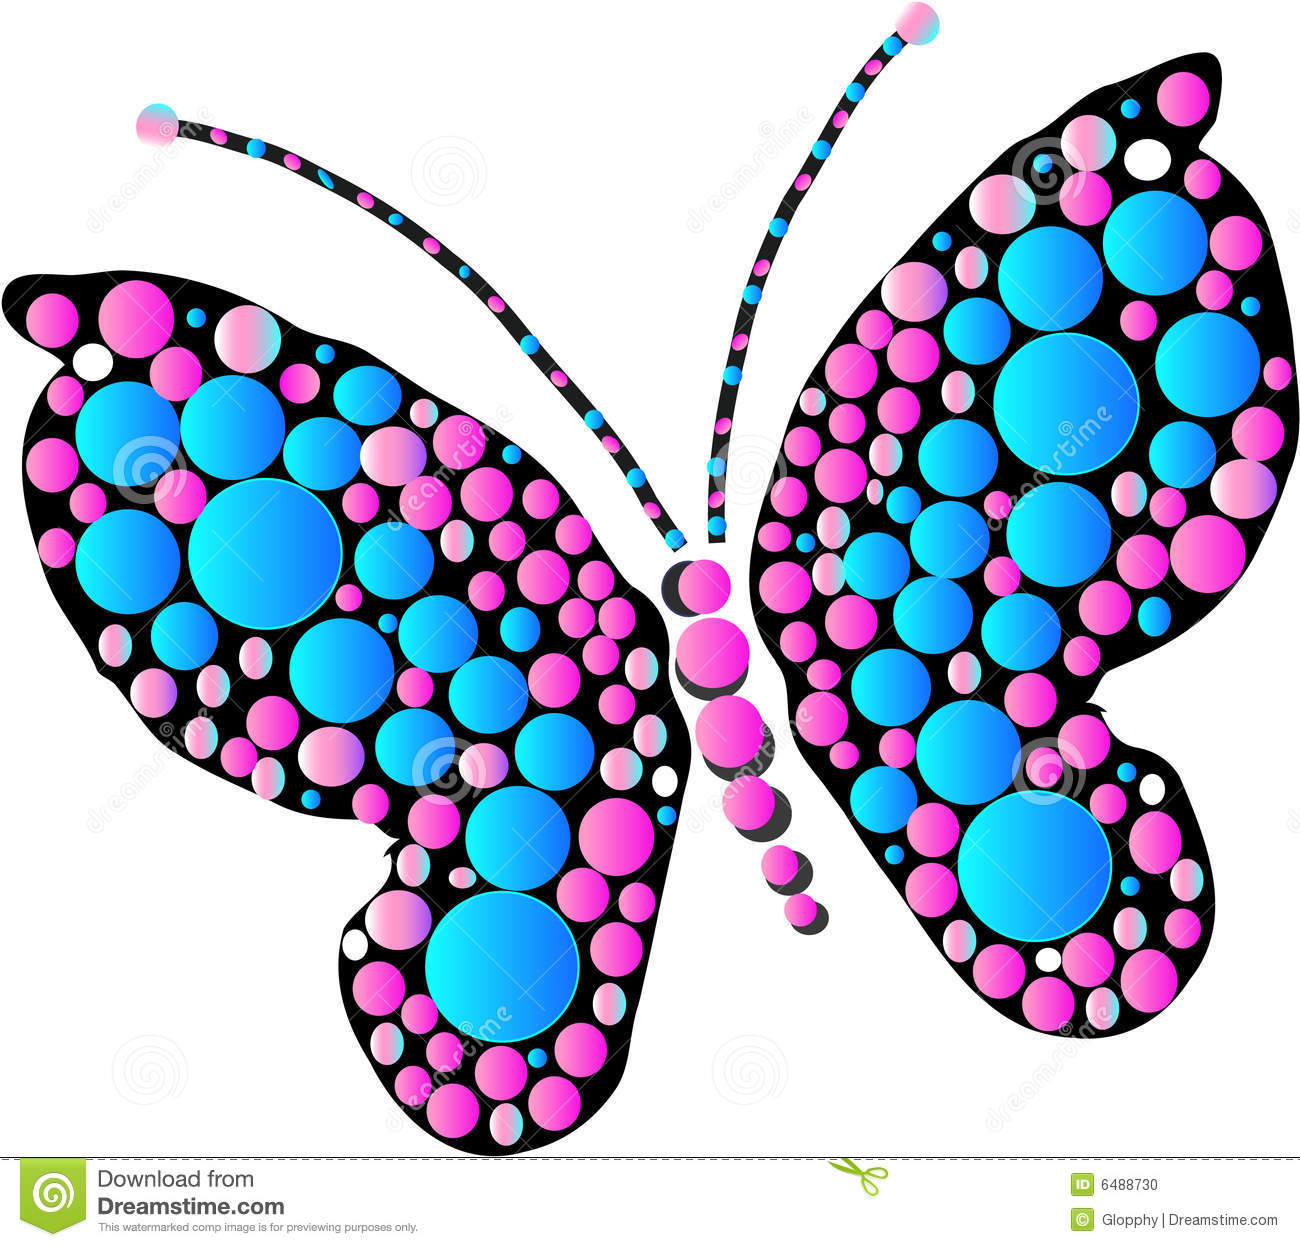 Multicolored butterfly designs as art and graphic illustration vector.